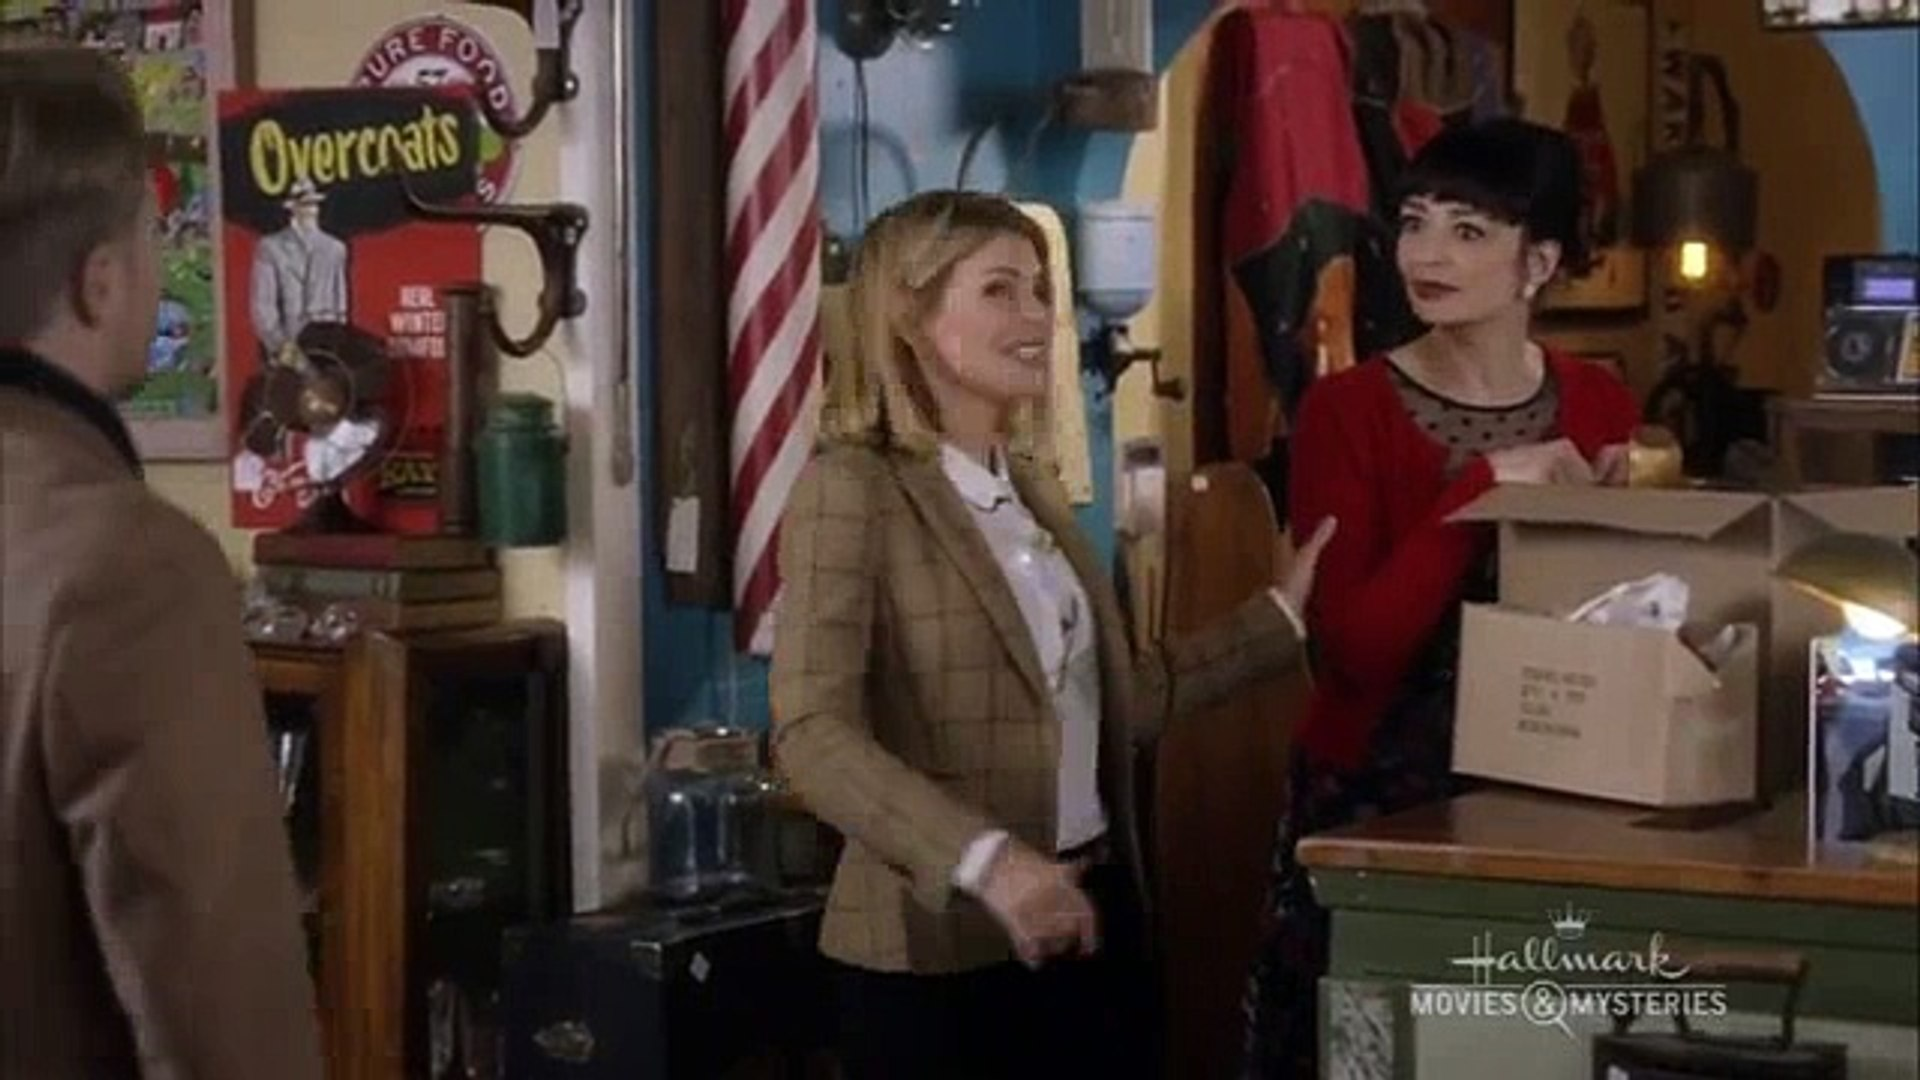 Garage Sale Mystery The Beach garage sale mystery s01e07 the beach murder vol. 01